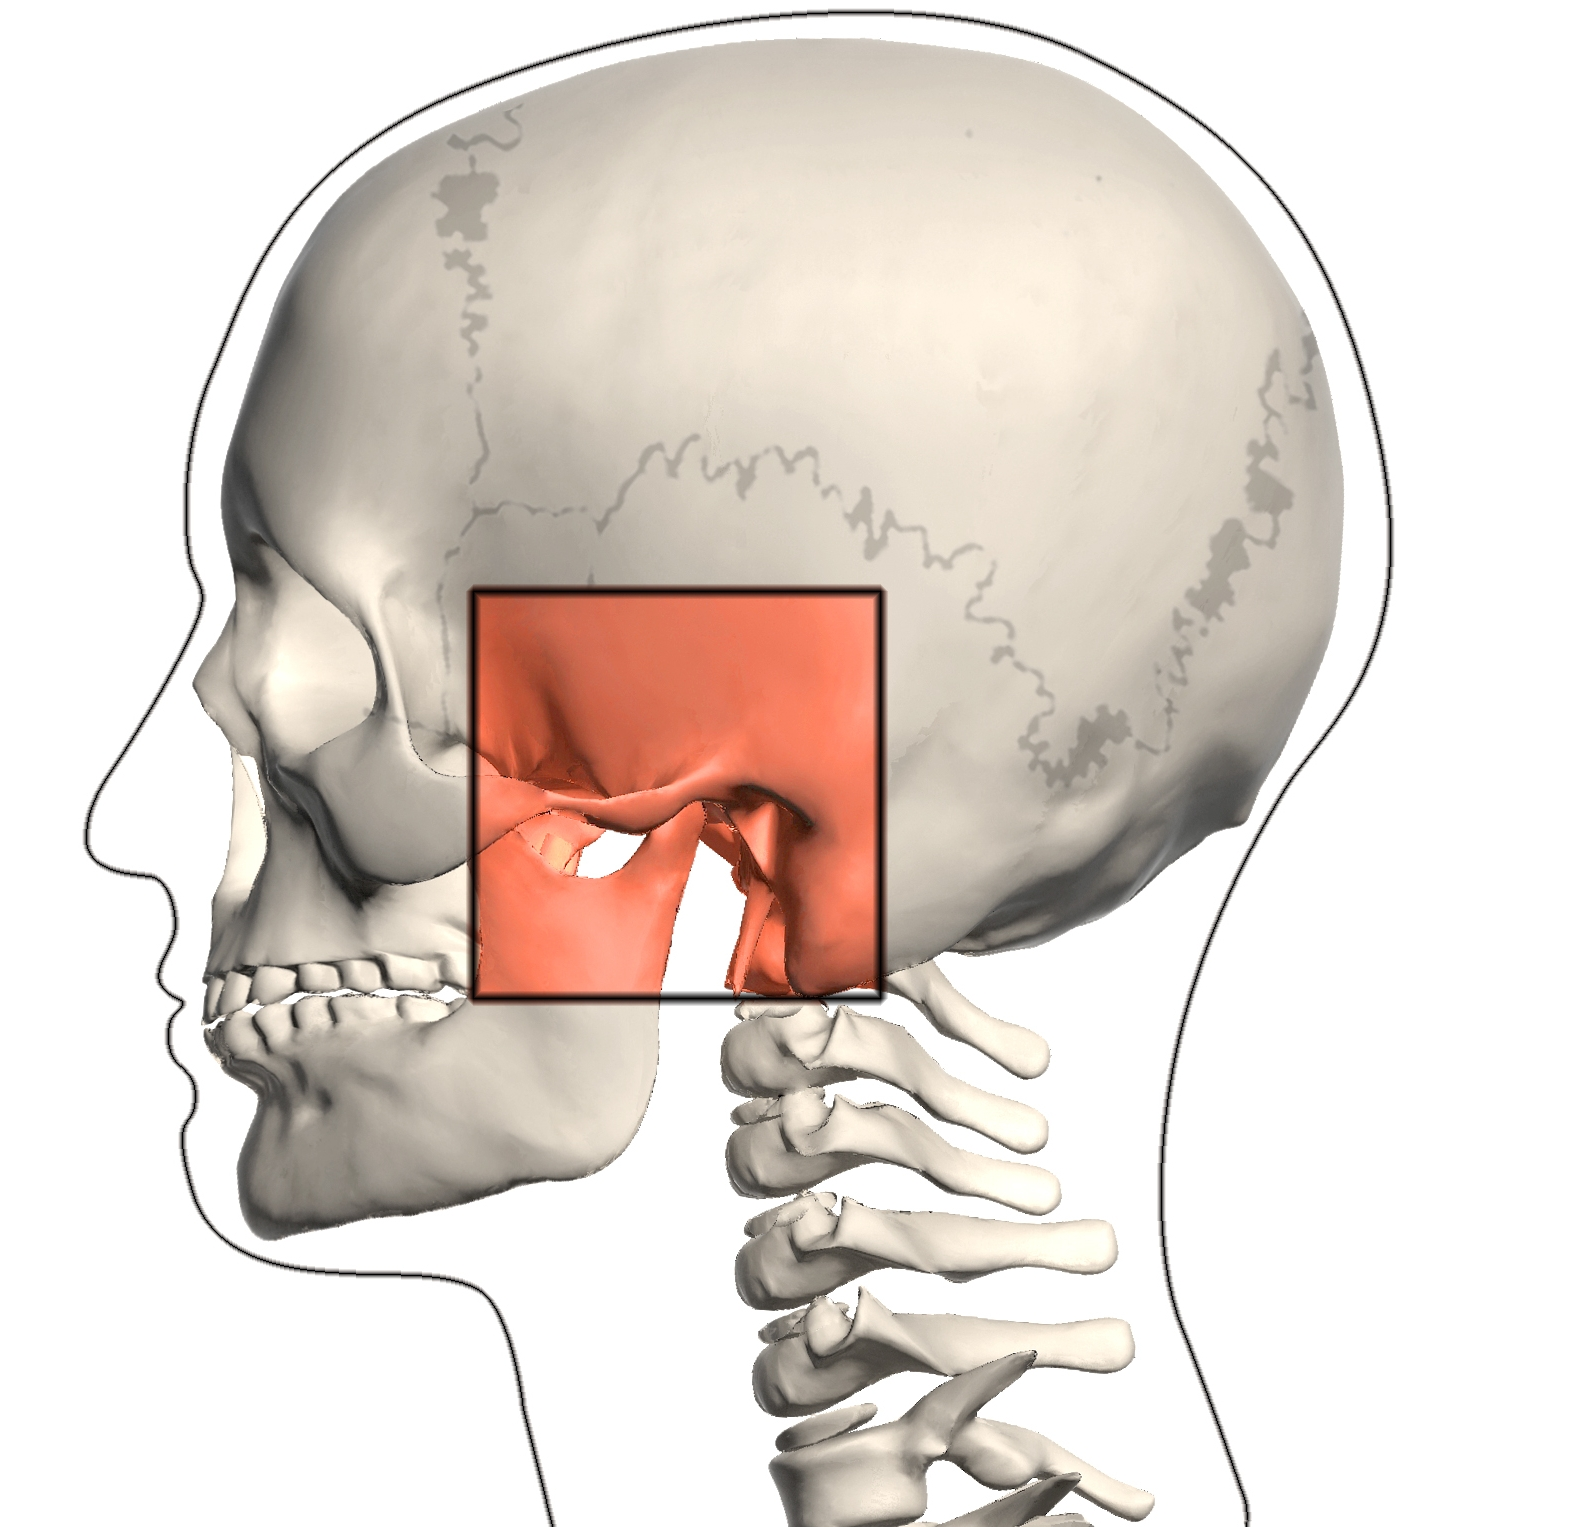 small resolution of tmj stands for the temporomandibular joint temporal like the temple bone of your skull and mandible meaning your jaw bone